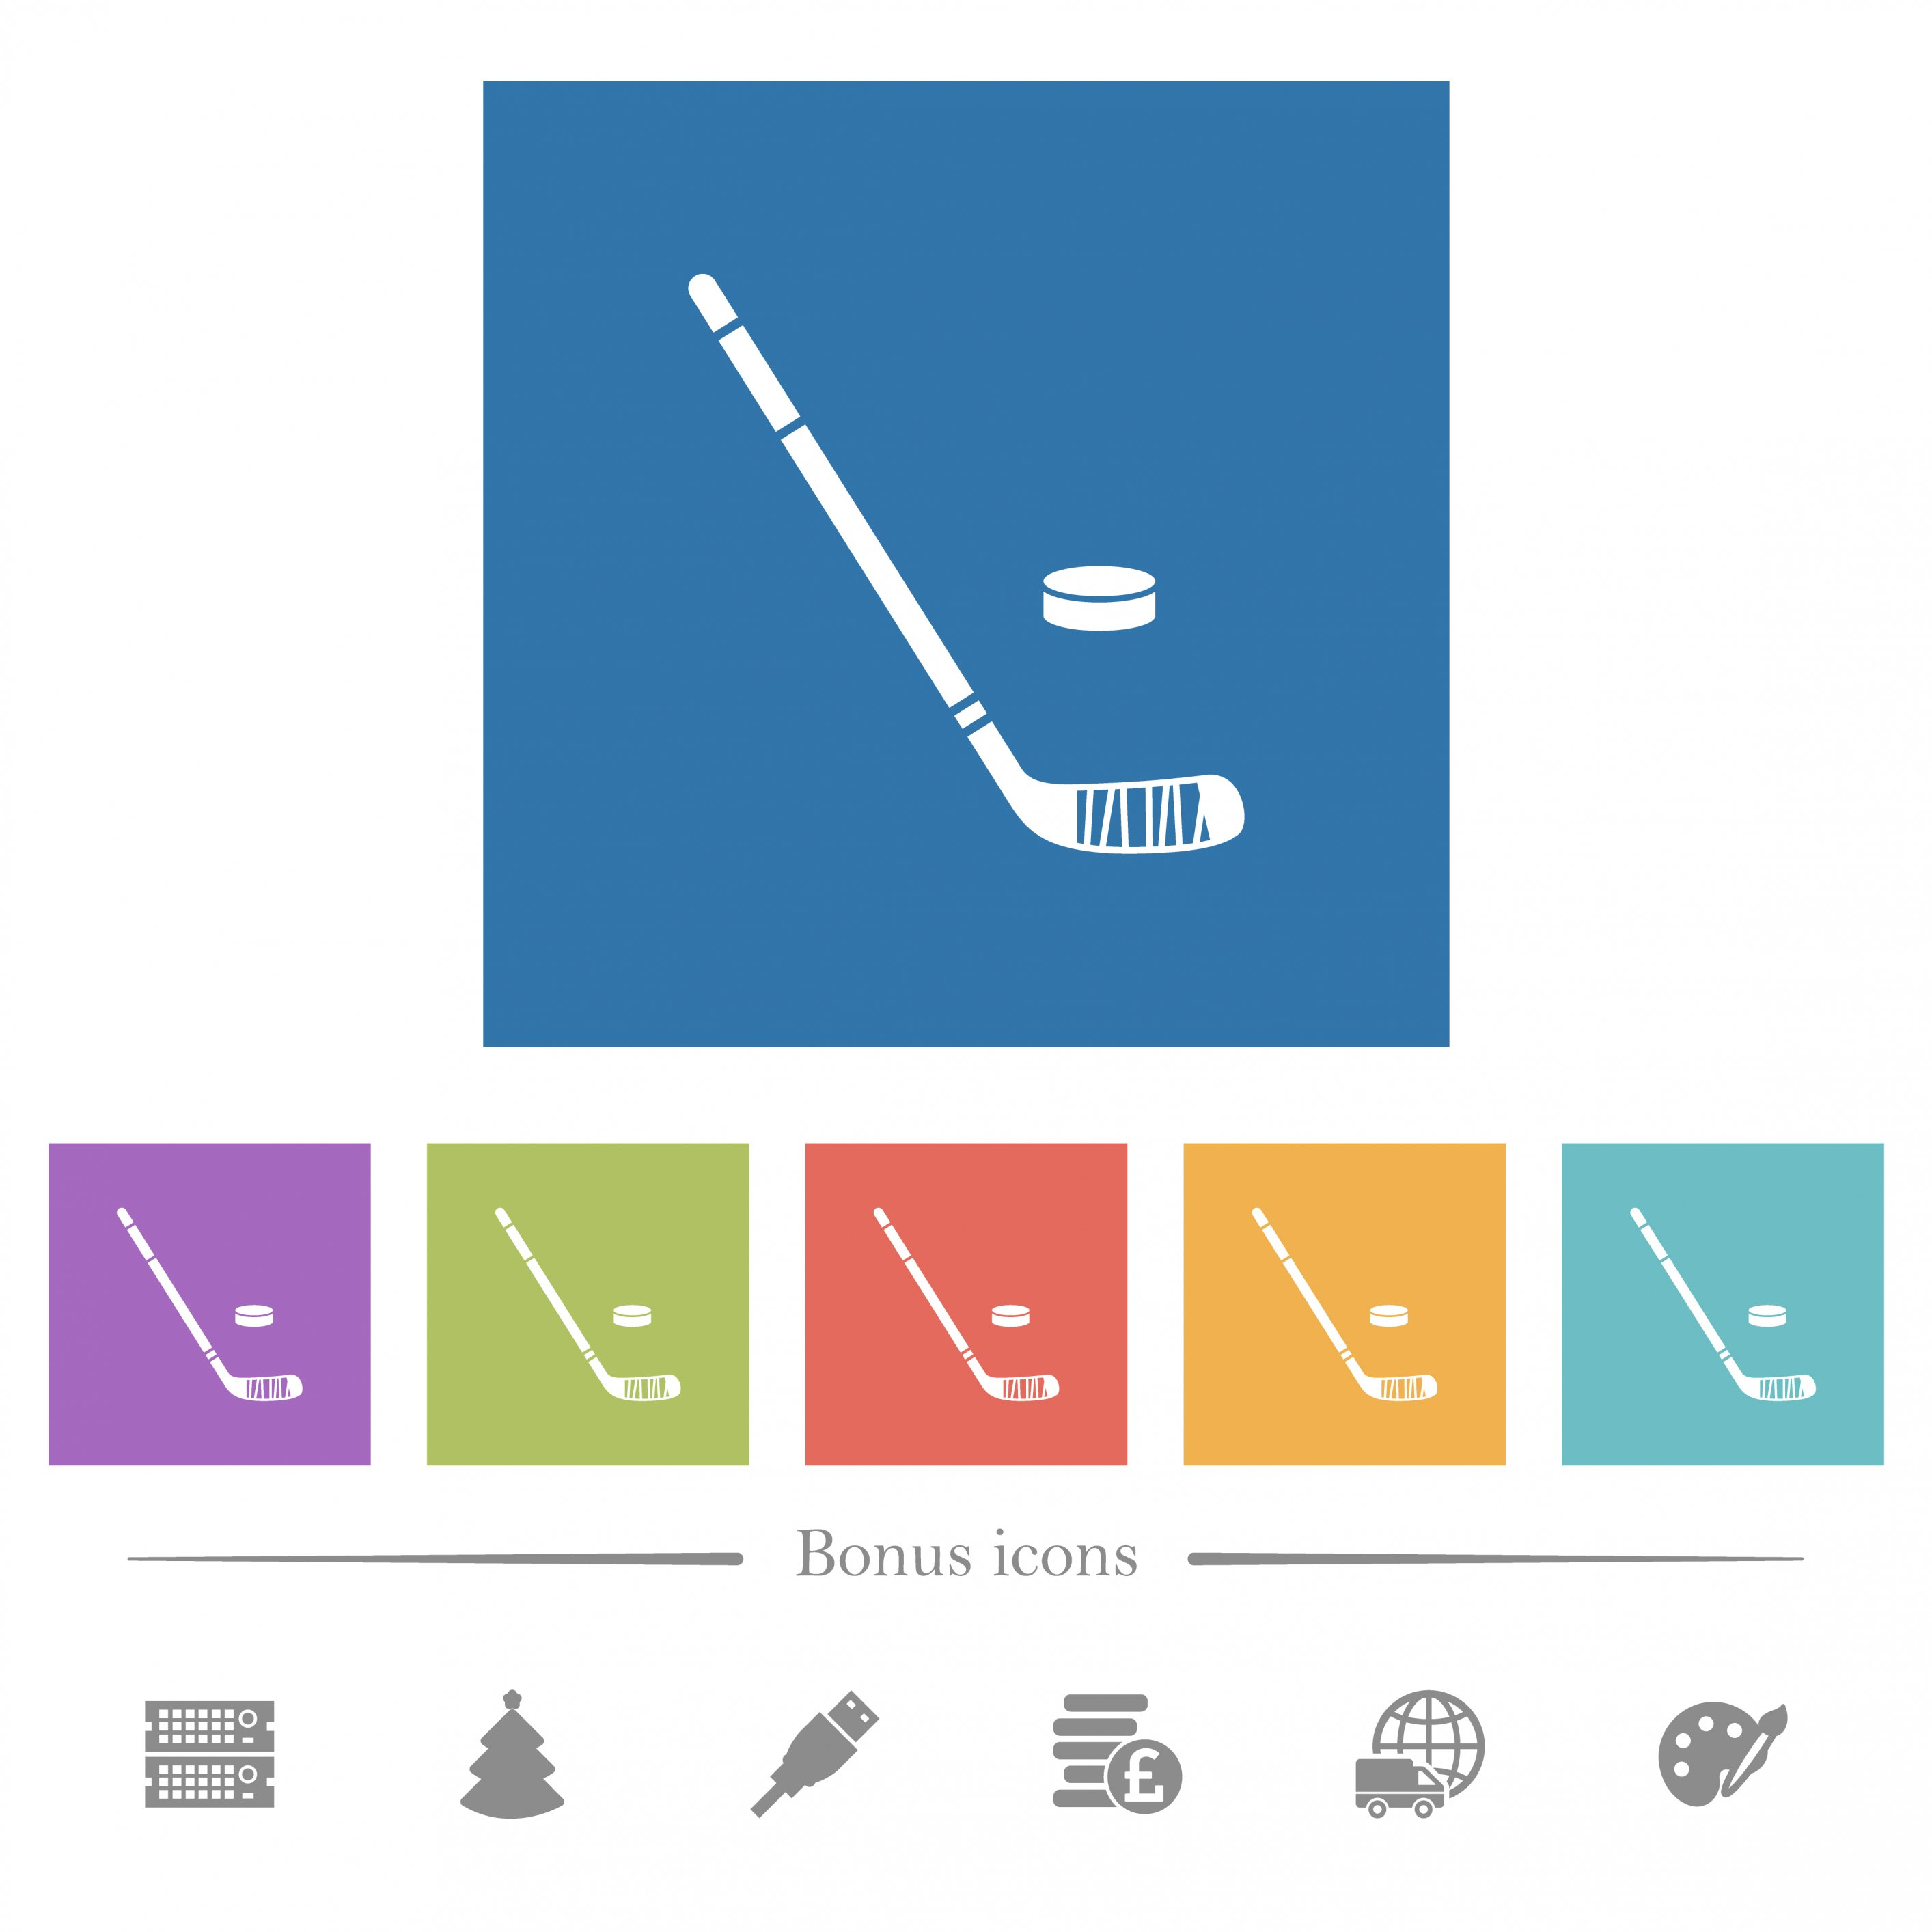 Hockey stick and puck flat white icons in square backgrounds. 6 bonus icons included. - Free image